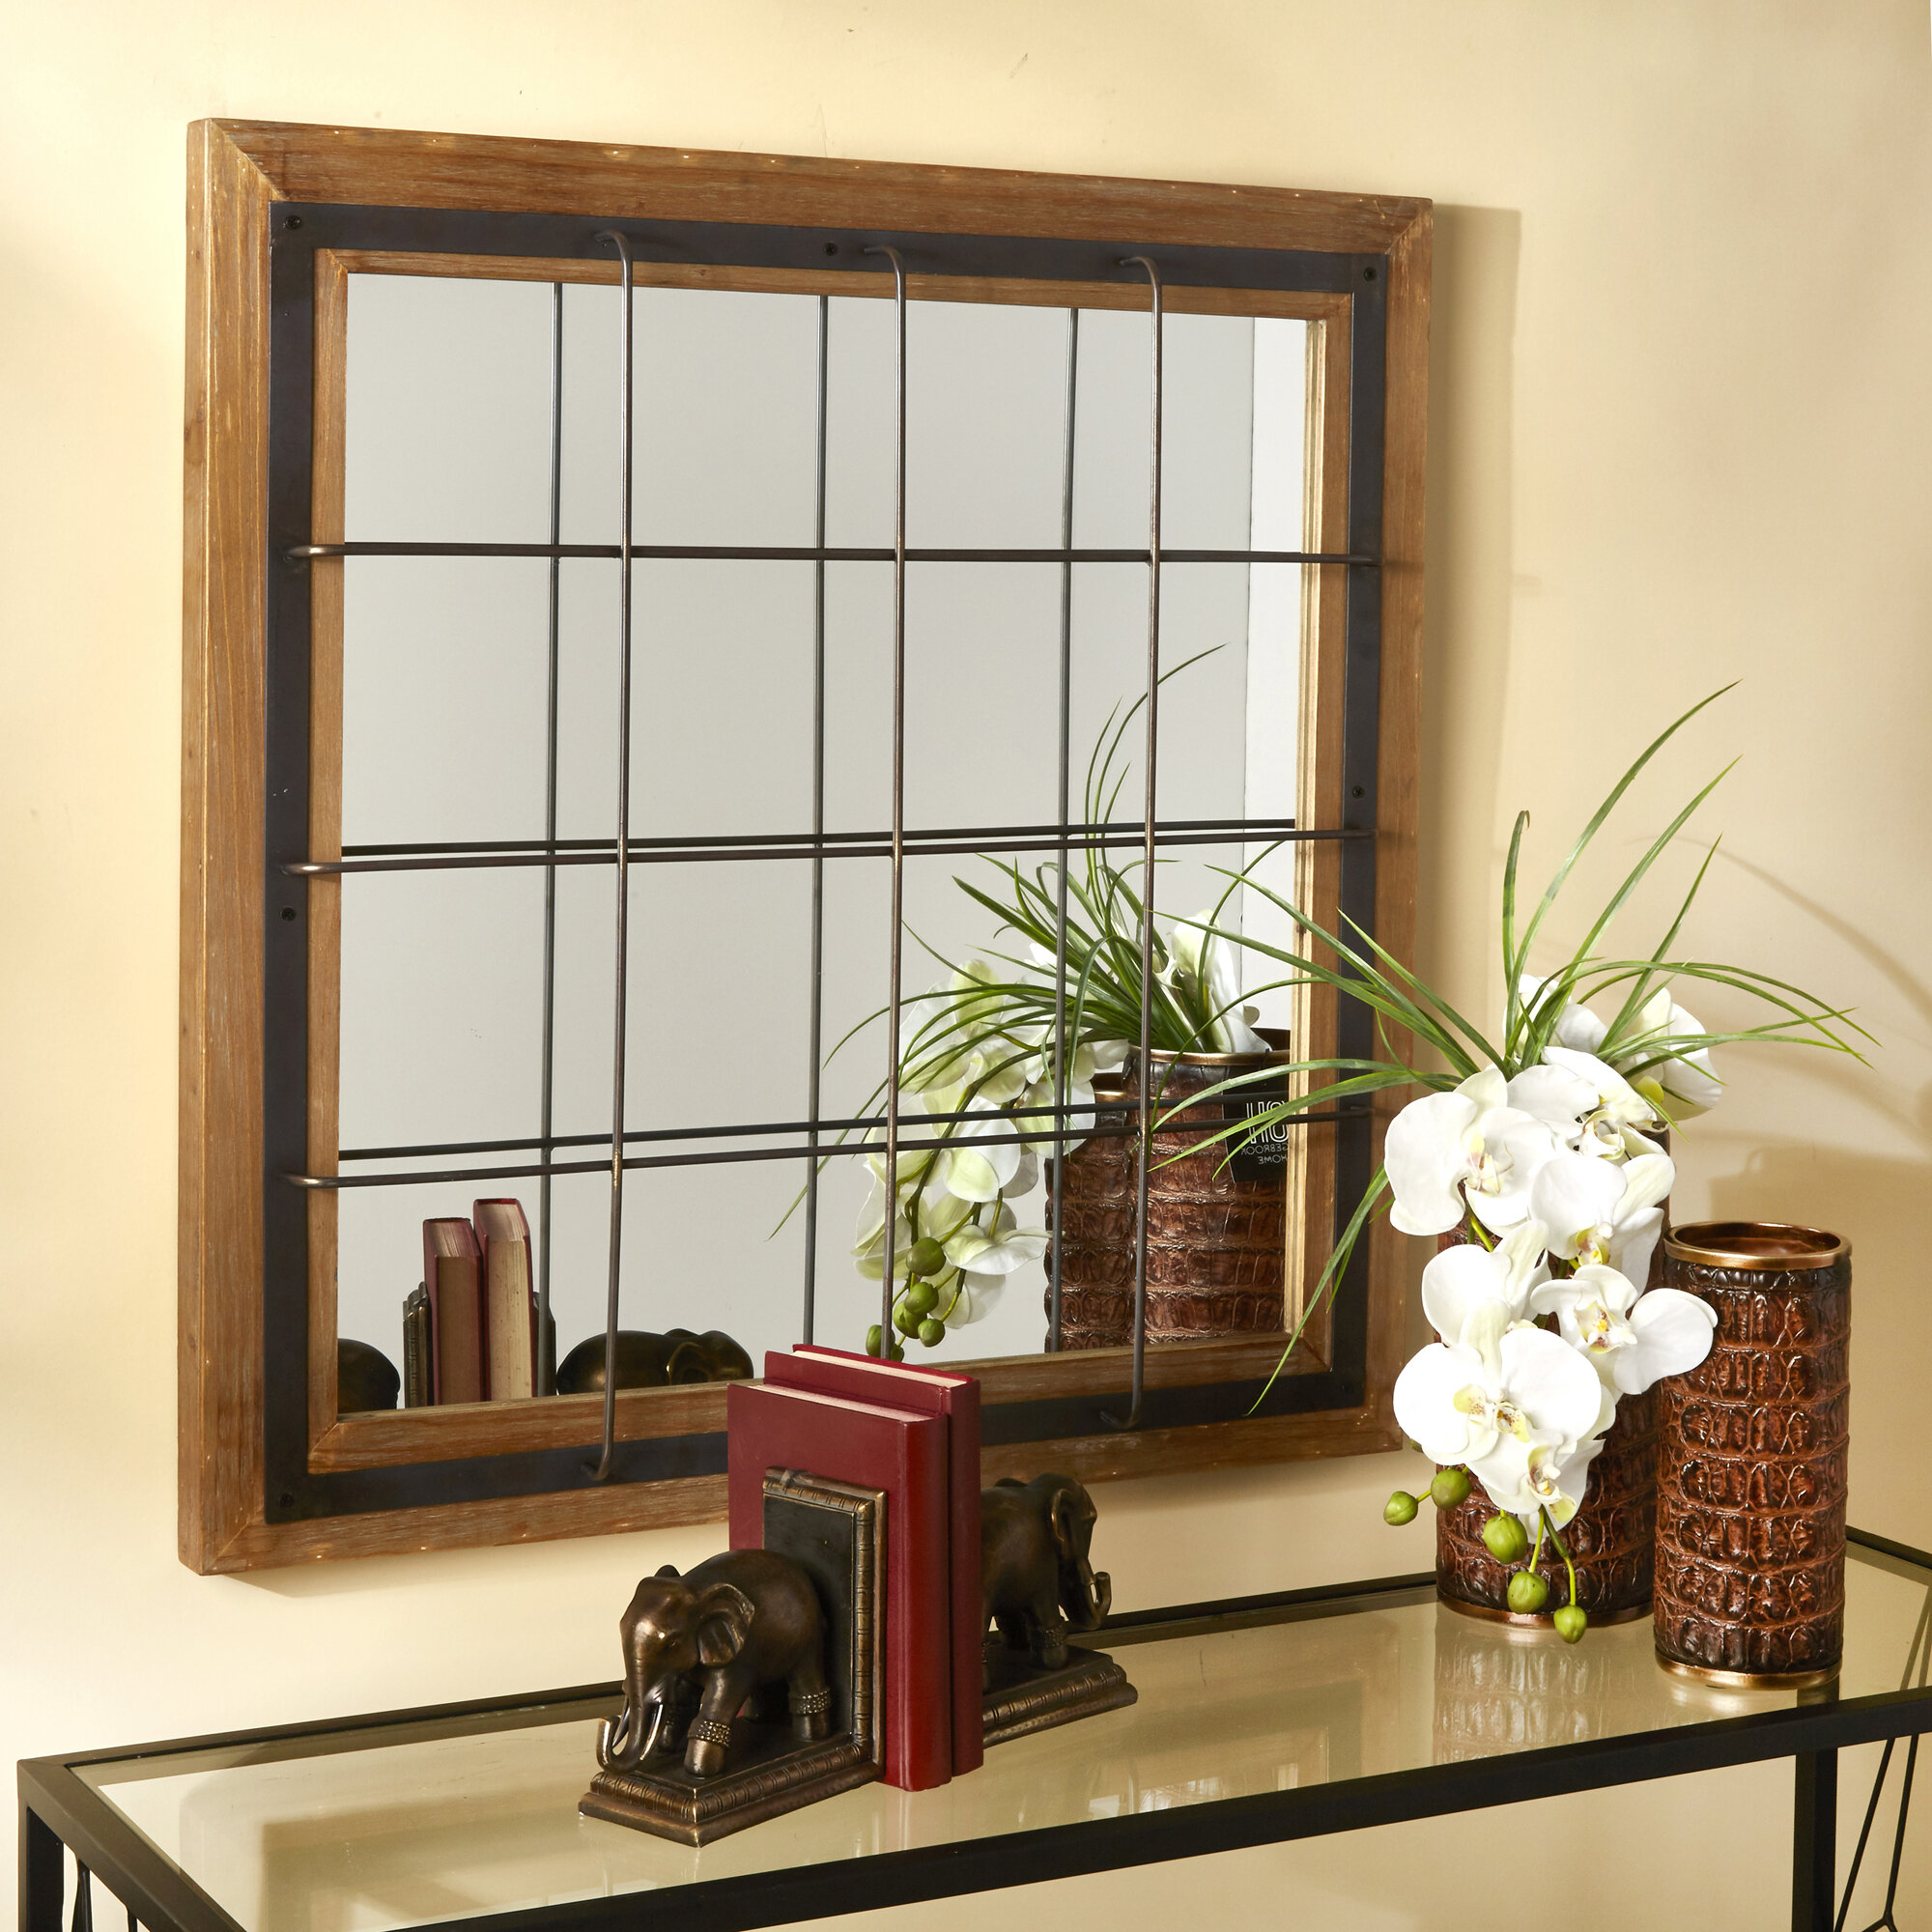 Leclair Windowpane Mirror With Polito Cottage/country Wall Mirrors (Image 9 of 20)